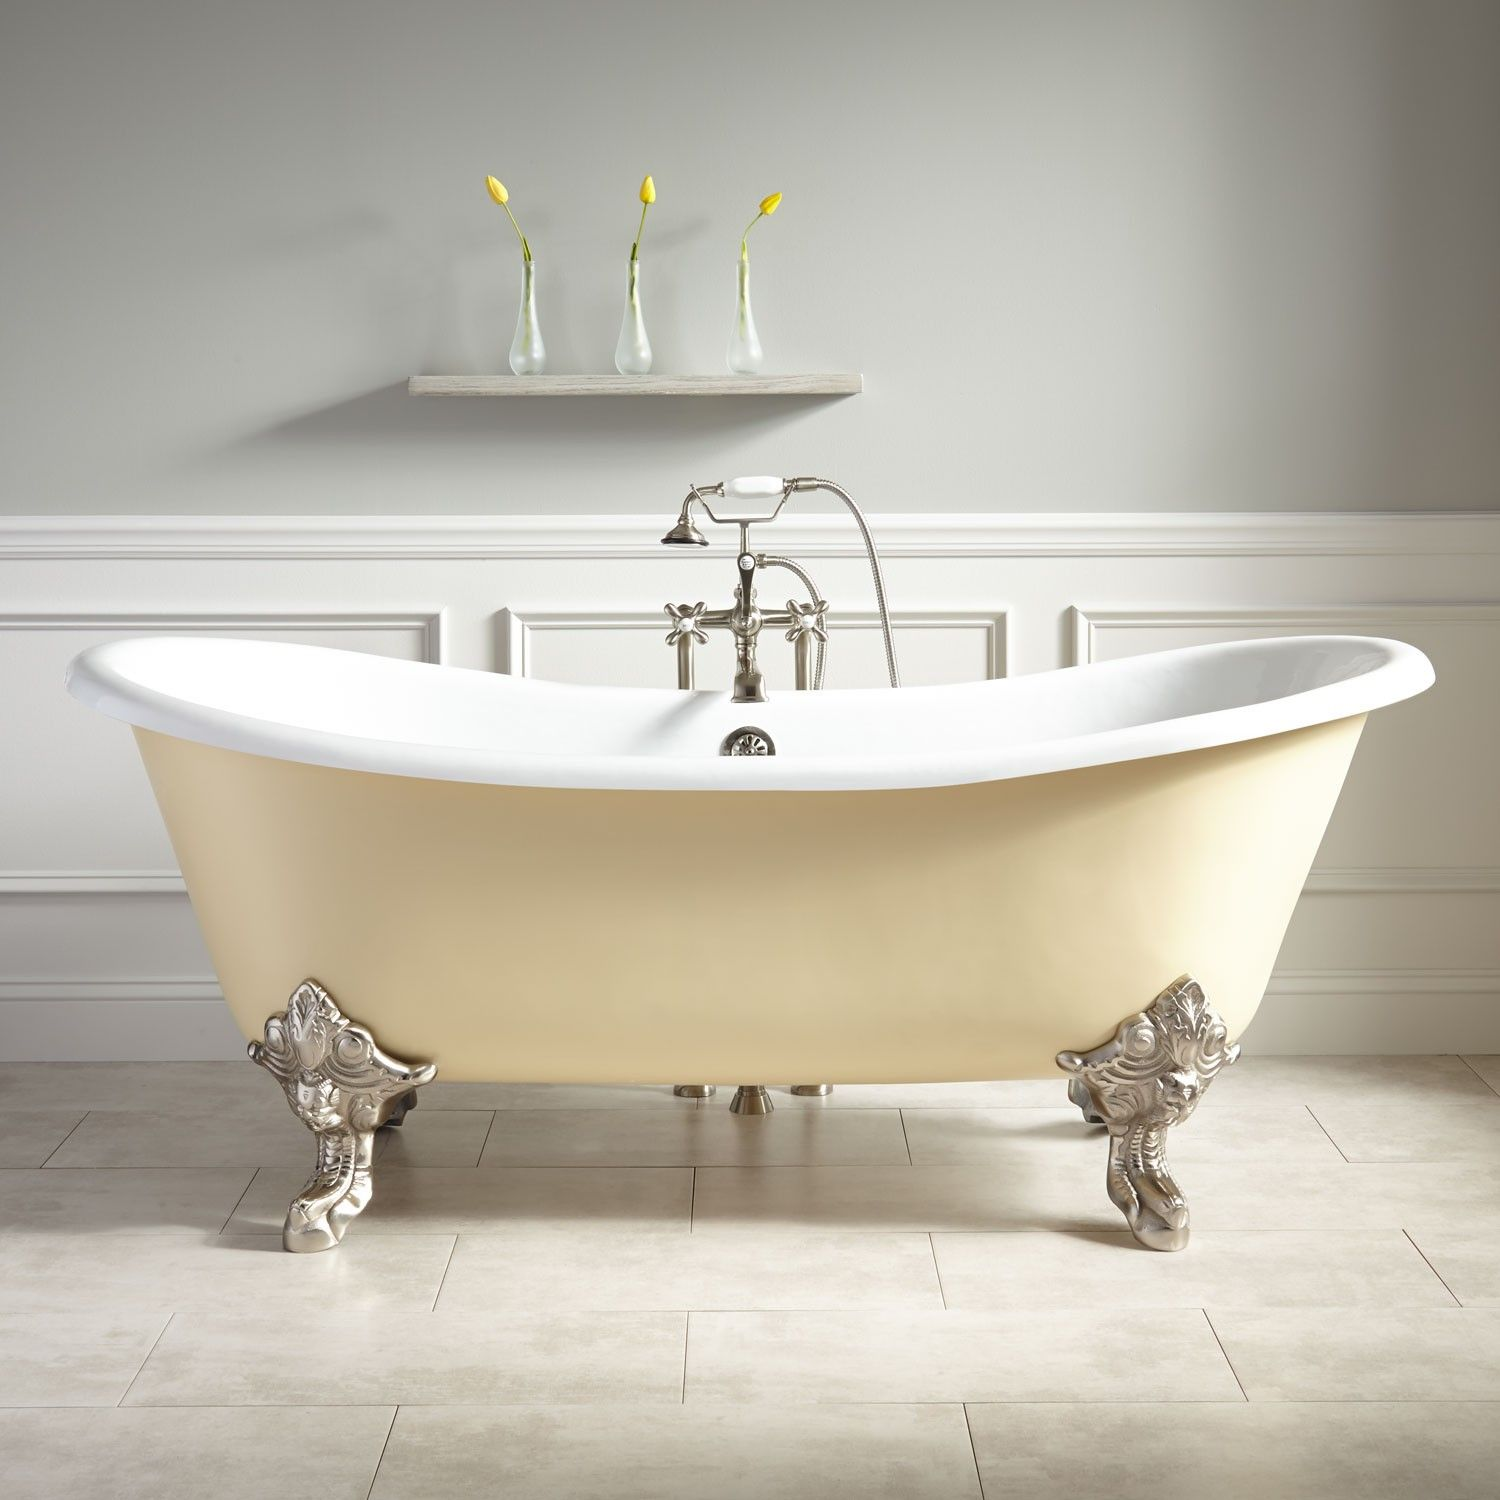 plumbing a clawfoot tub. 72  Lena Cast Iron Clawfoot Tub Monarch Imperial Feet Light Yellow